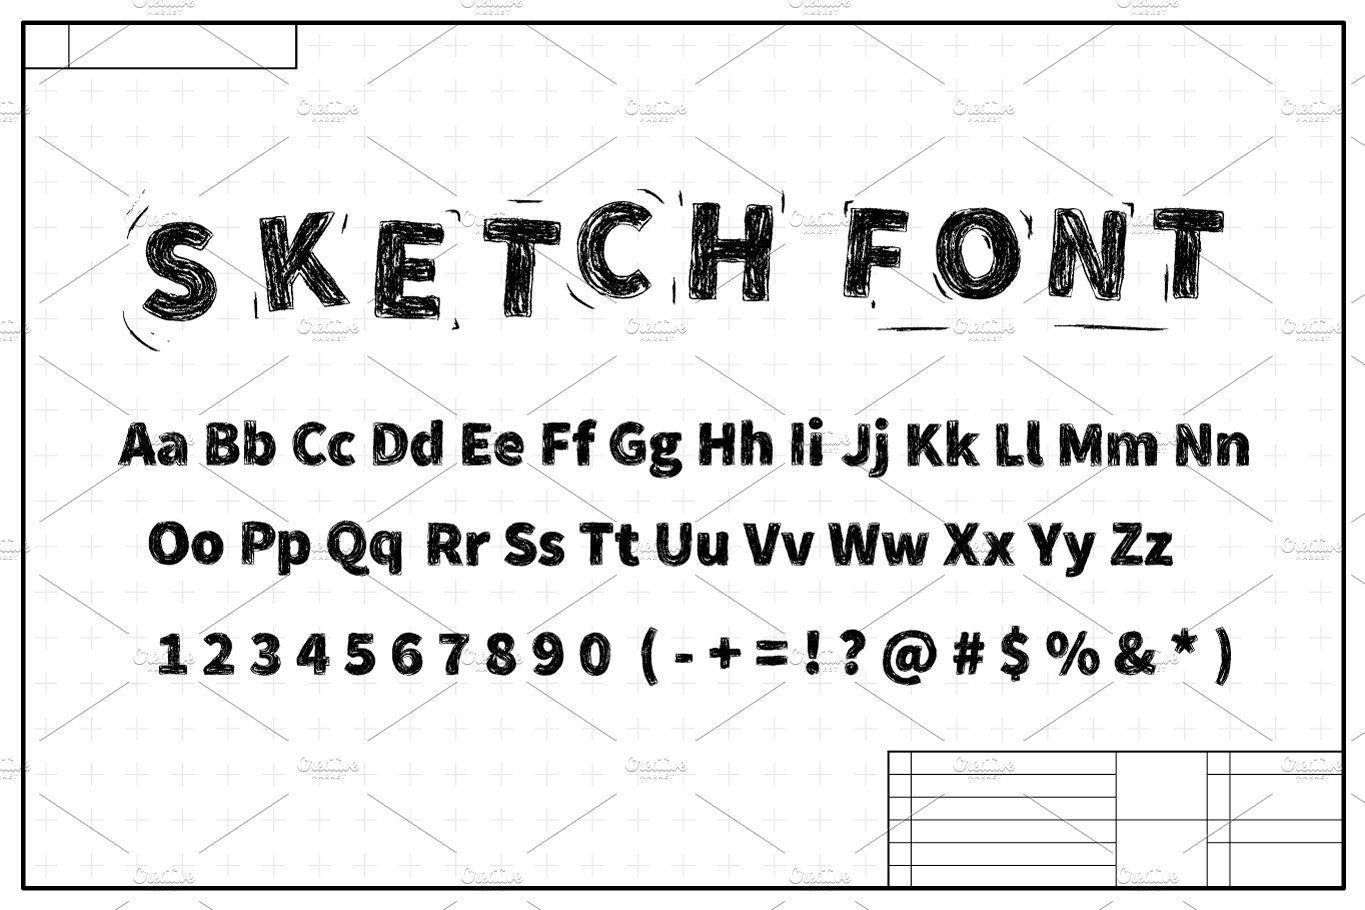 Black sketch font on blueprint plan symbol fonts creative market malvernweather Image collections